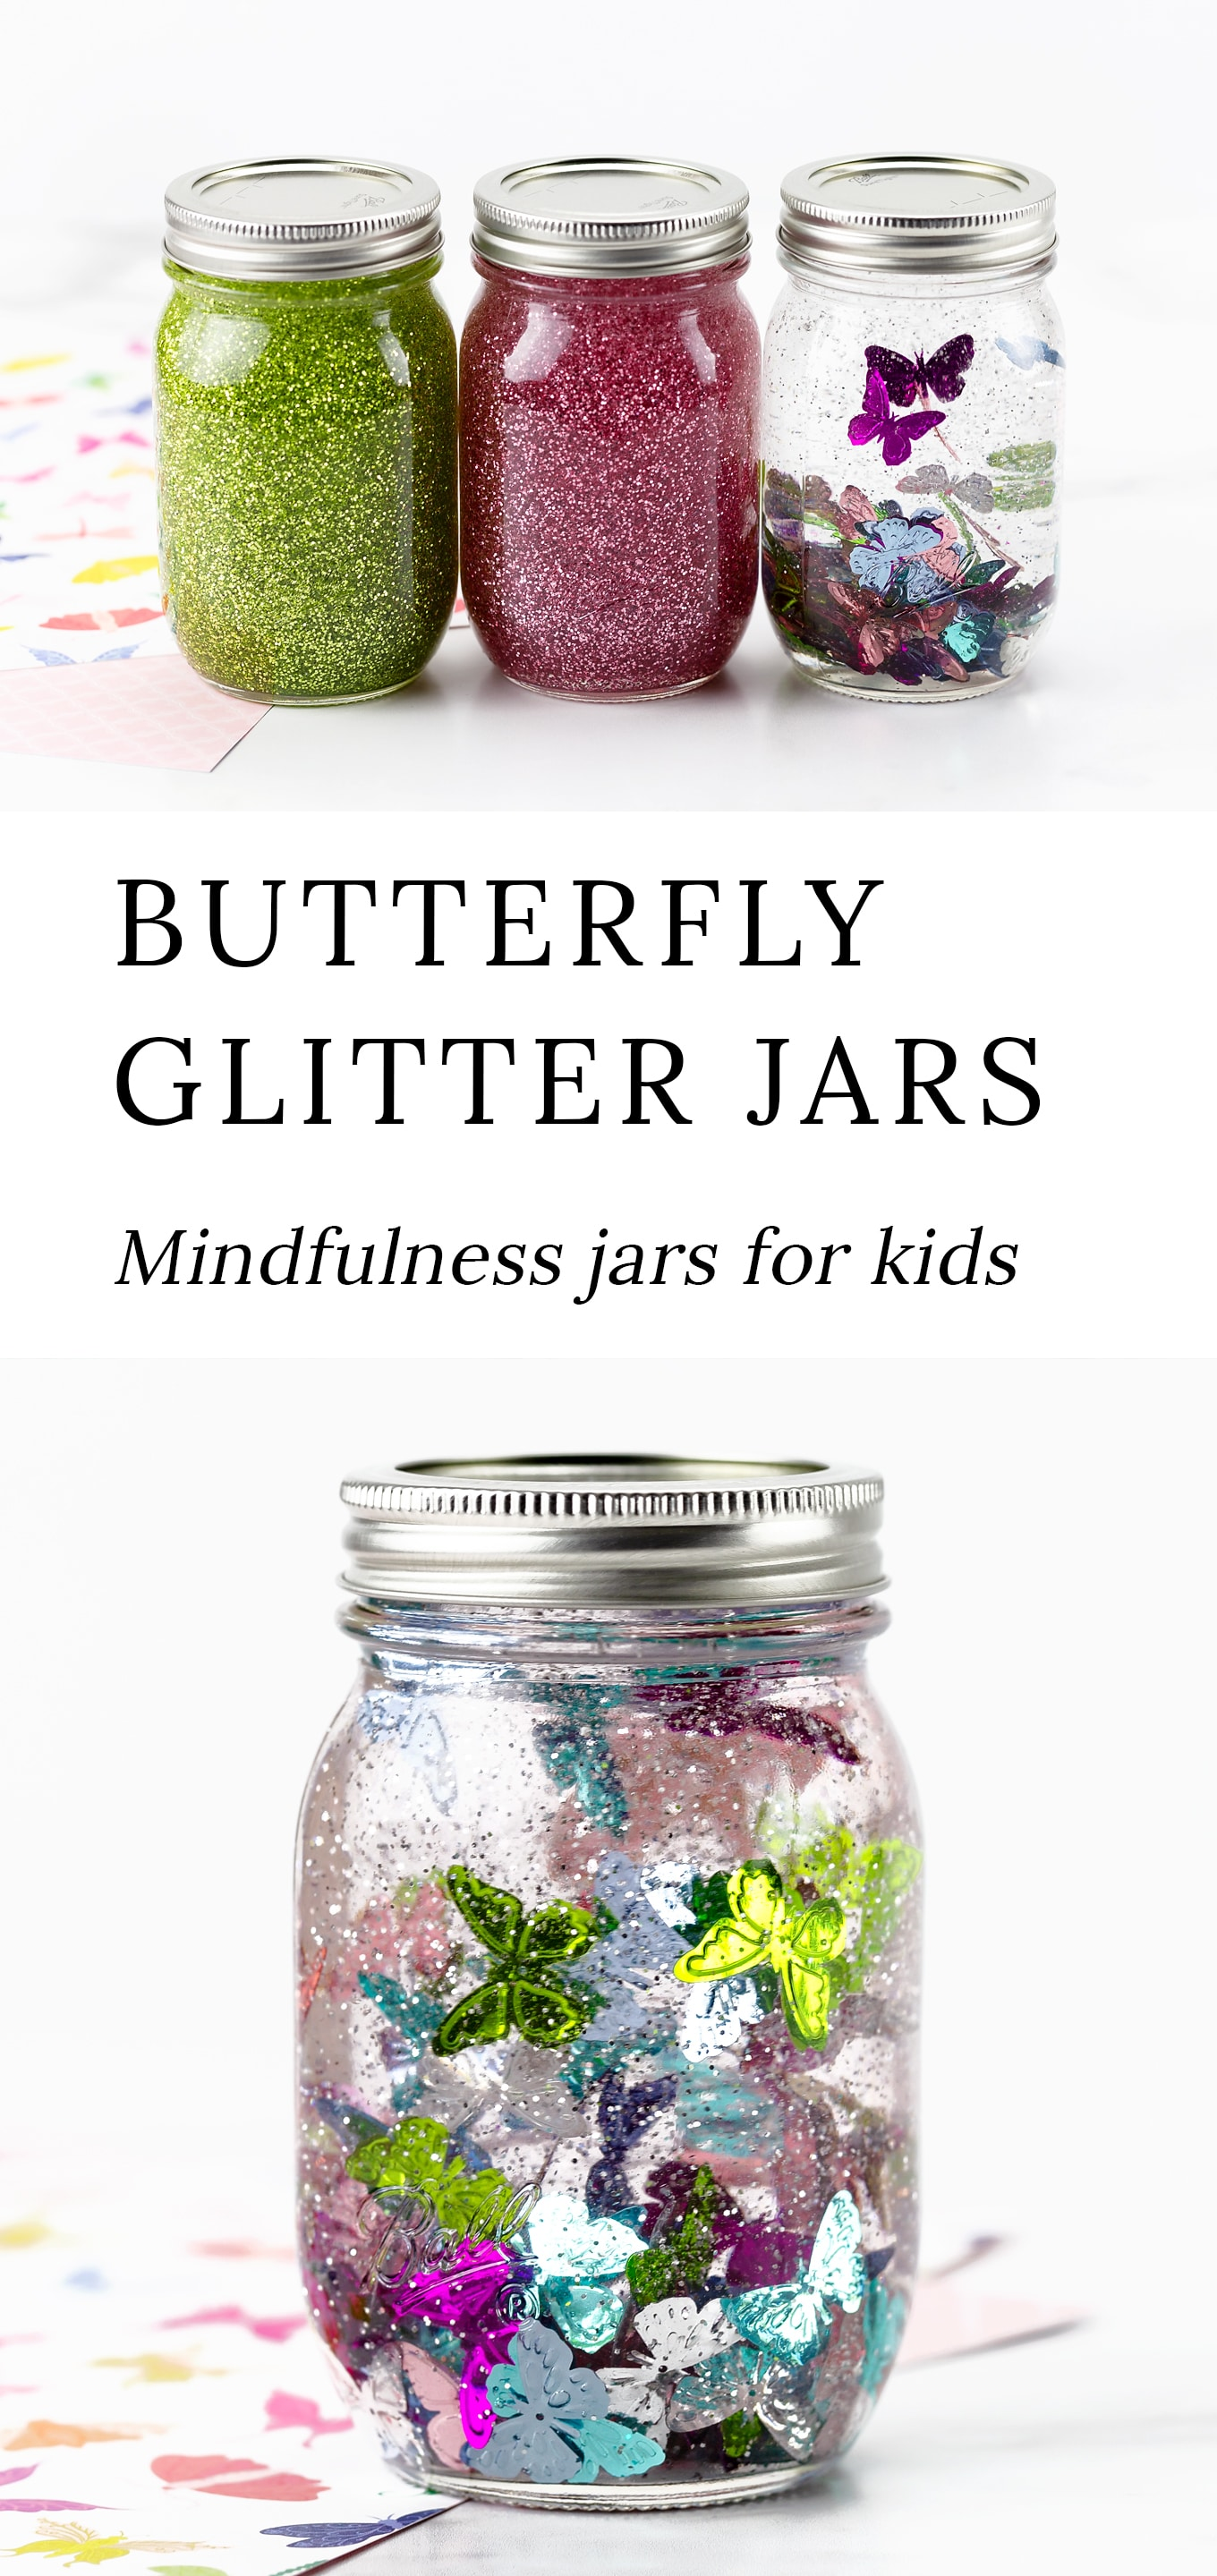 Follow along with our step-by-step directions and video tutorial to create these beautiful and calming Butterfly Glitter Jars! #glitterjars #spring #kidscrafts via @firefliesandmudpies